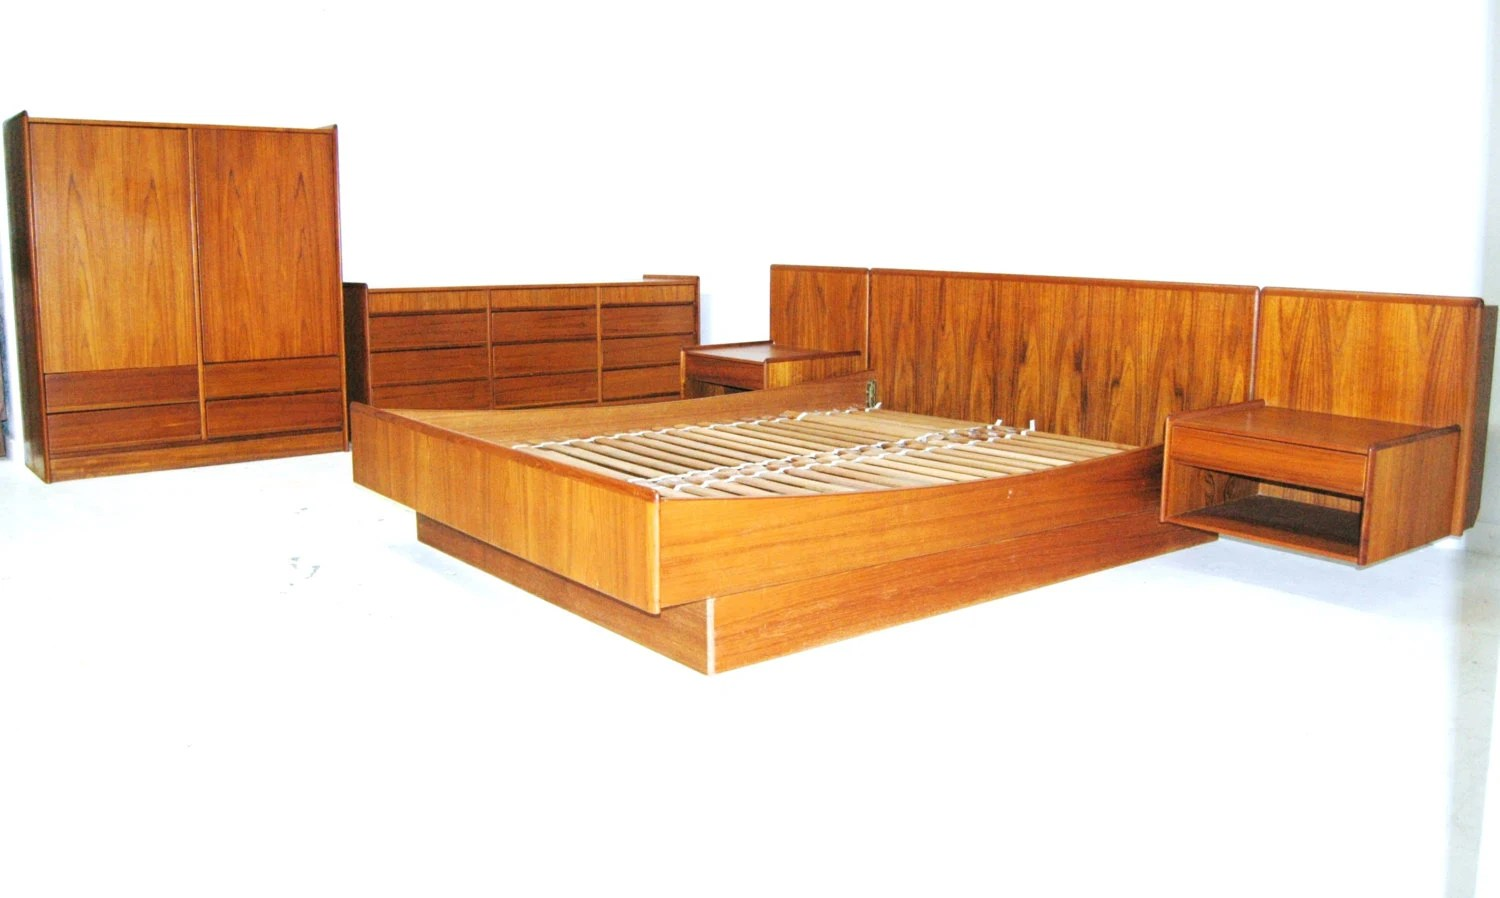 Floating Bedroom Floating Platform Bedroom Set Vintage Mid Century Teak